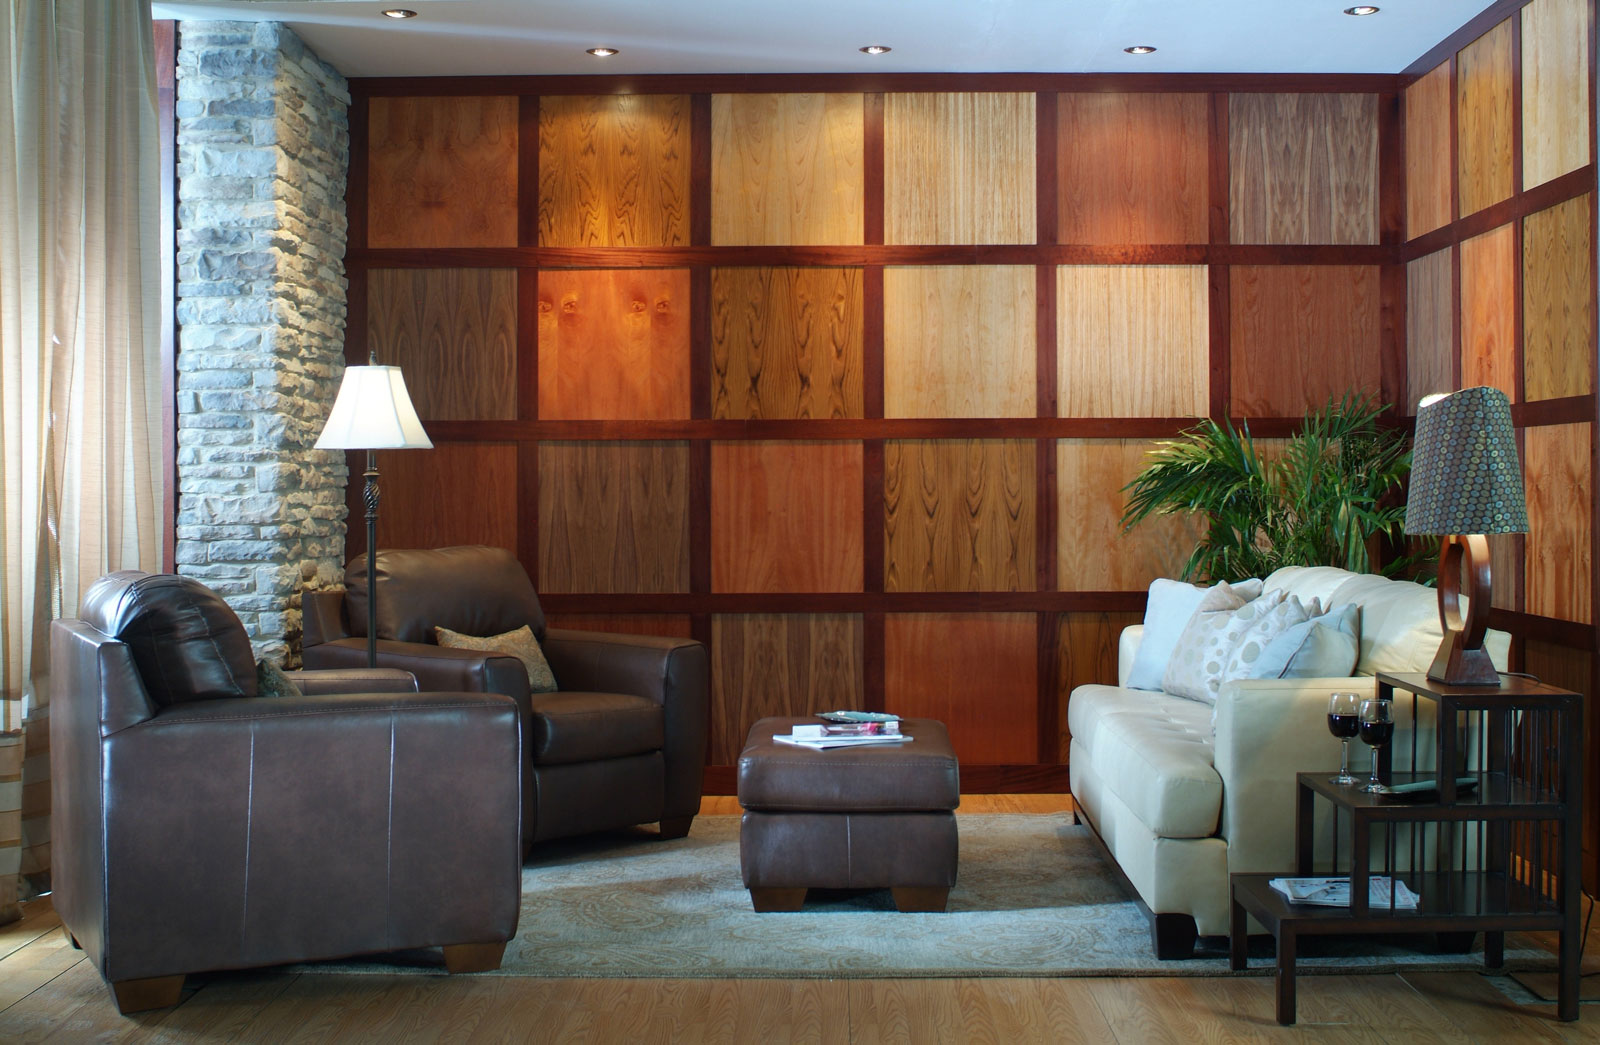 Classic Modern Style - Paneling and Wainscot